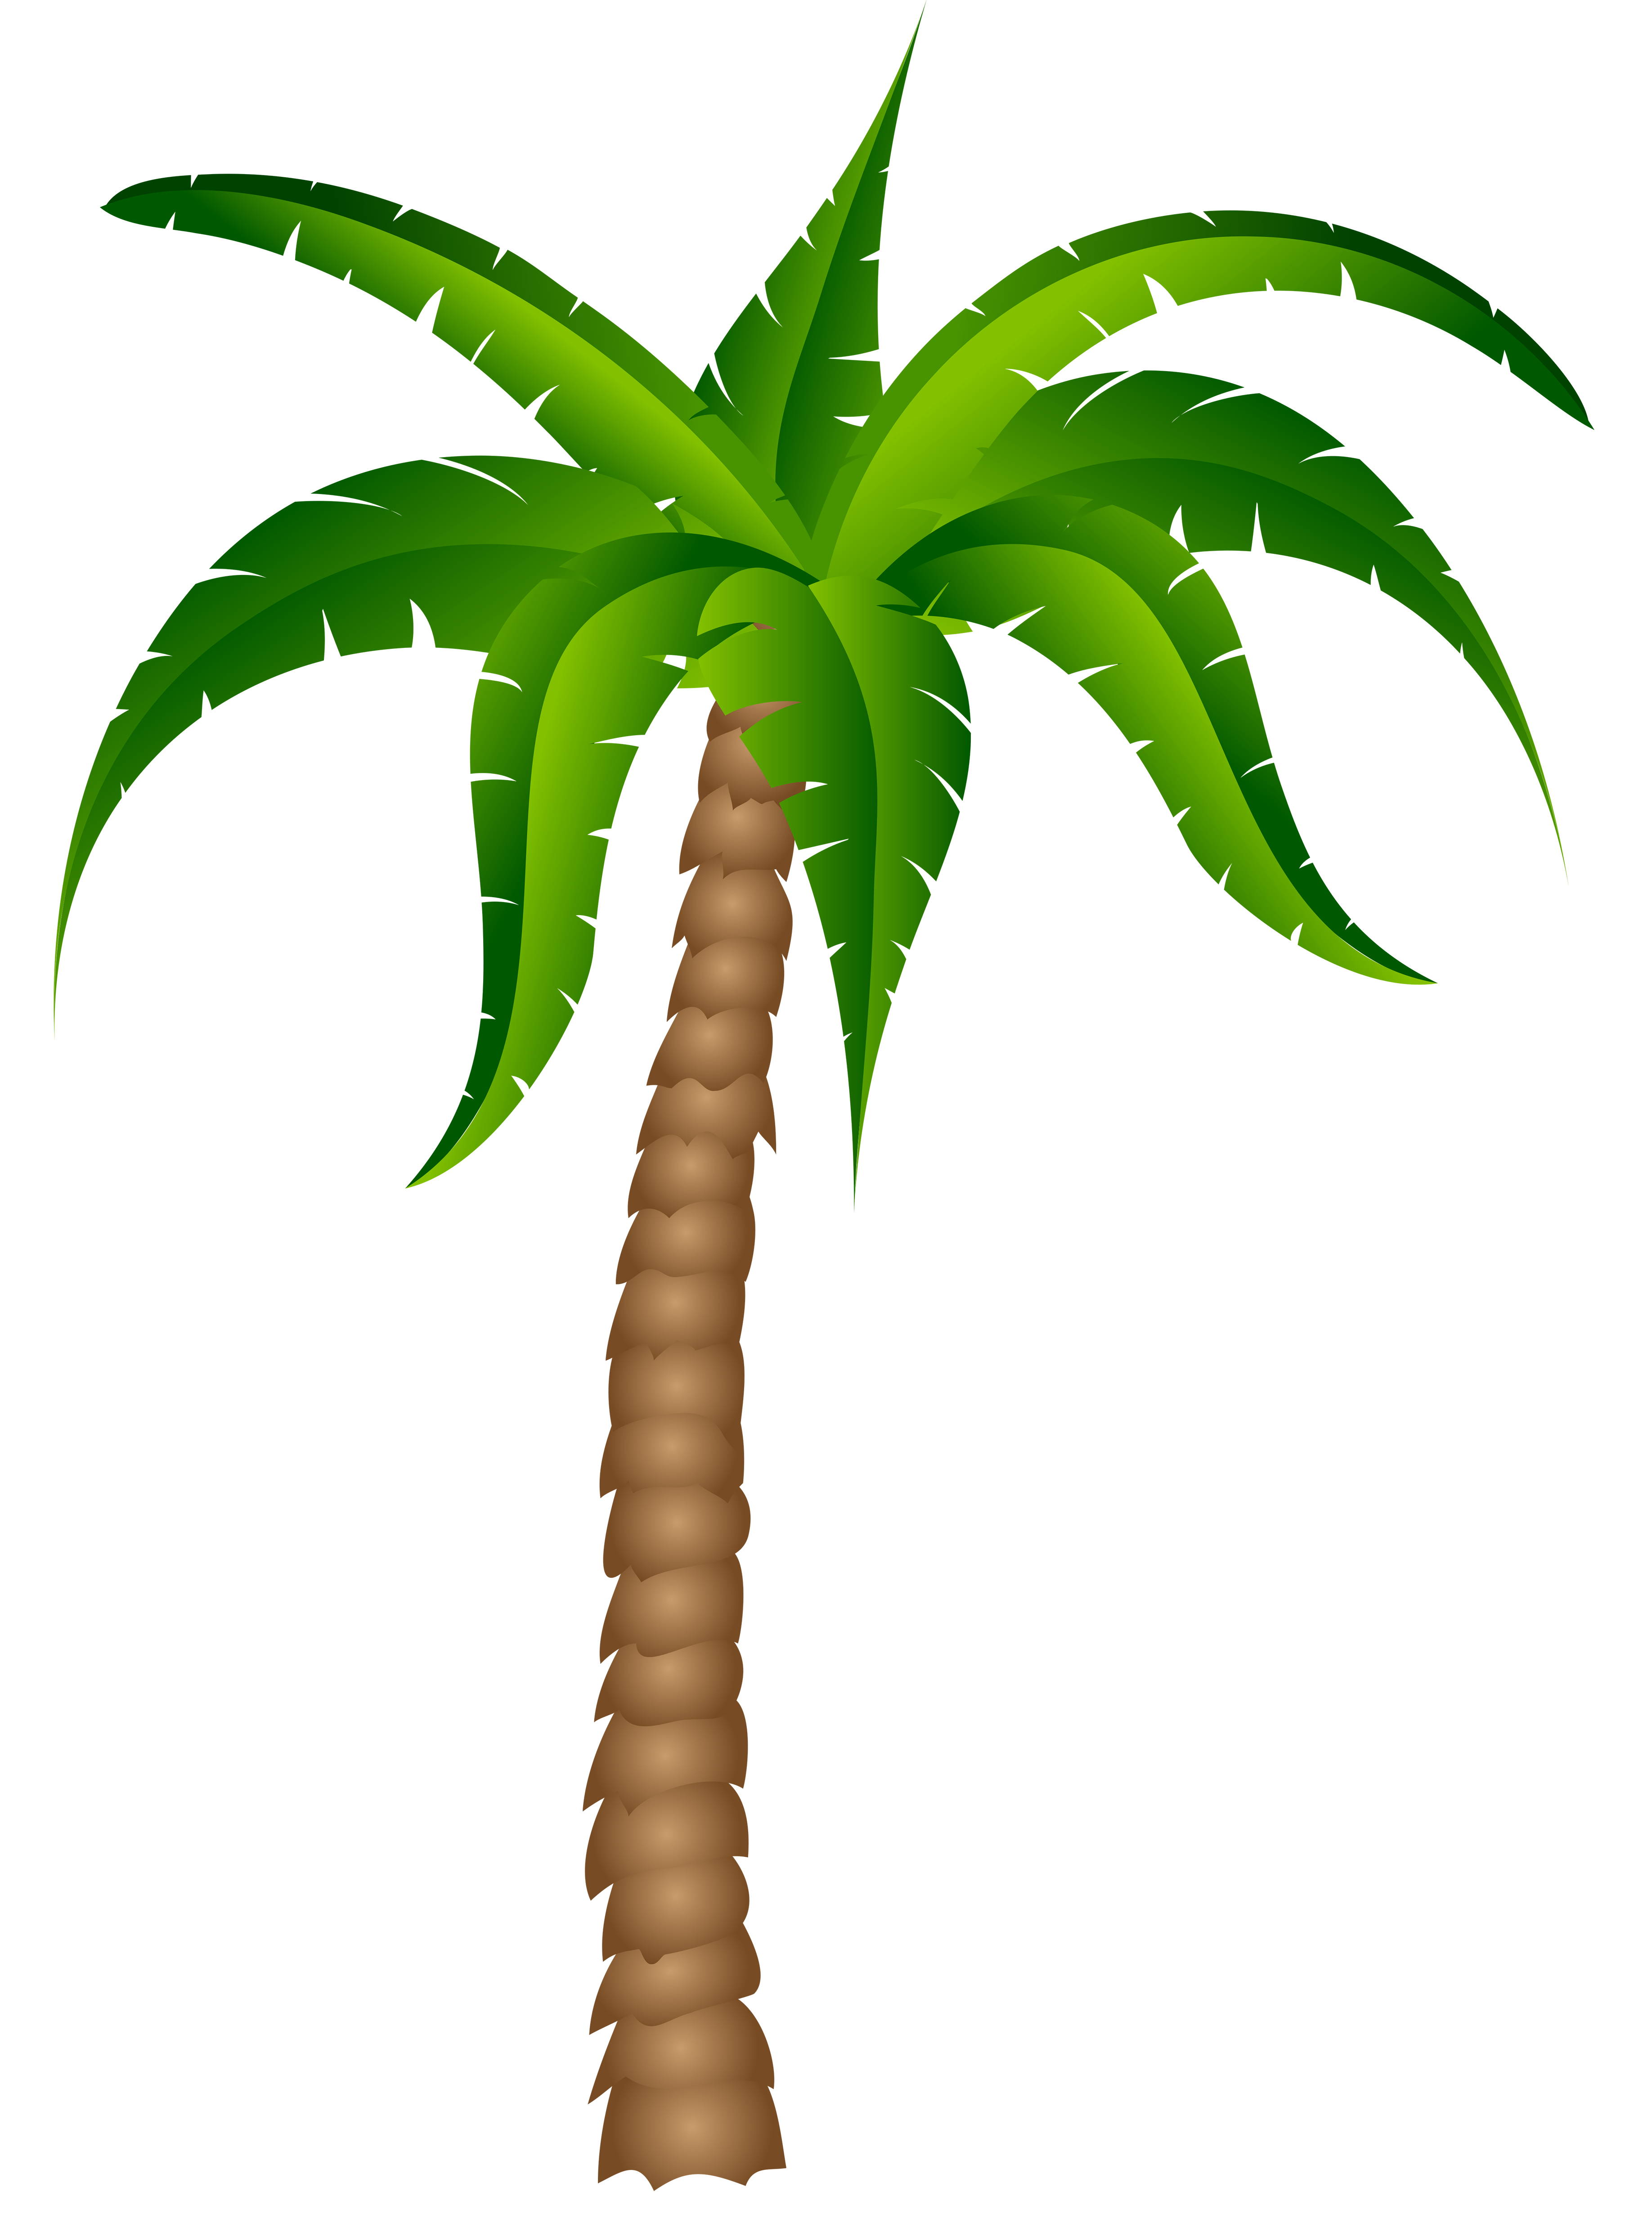 Palm tree palm clipart wikiclipart